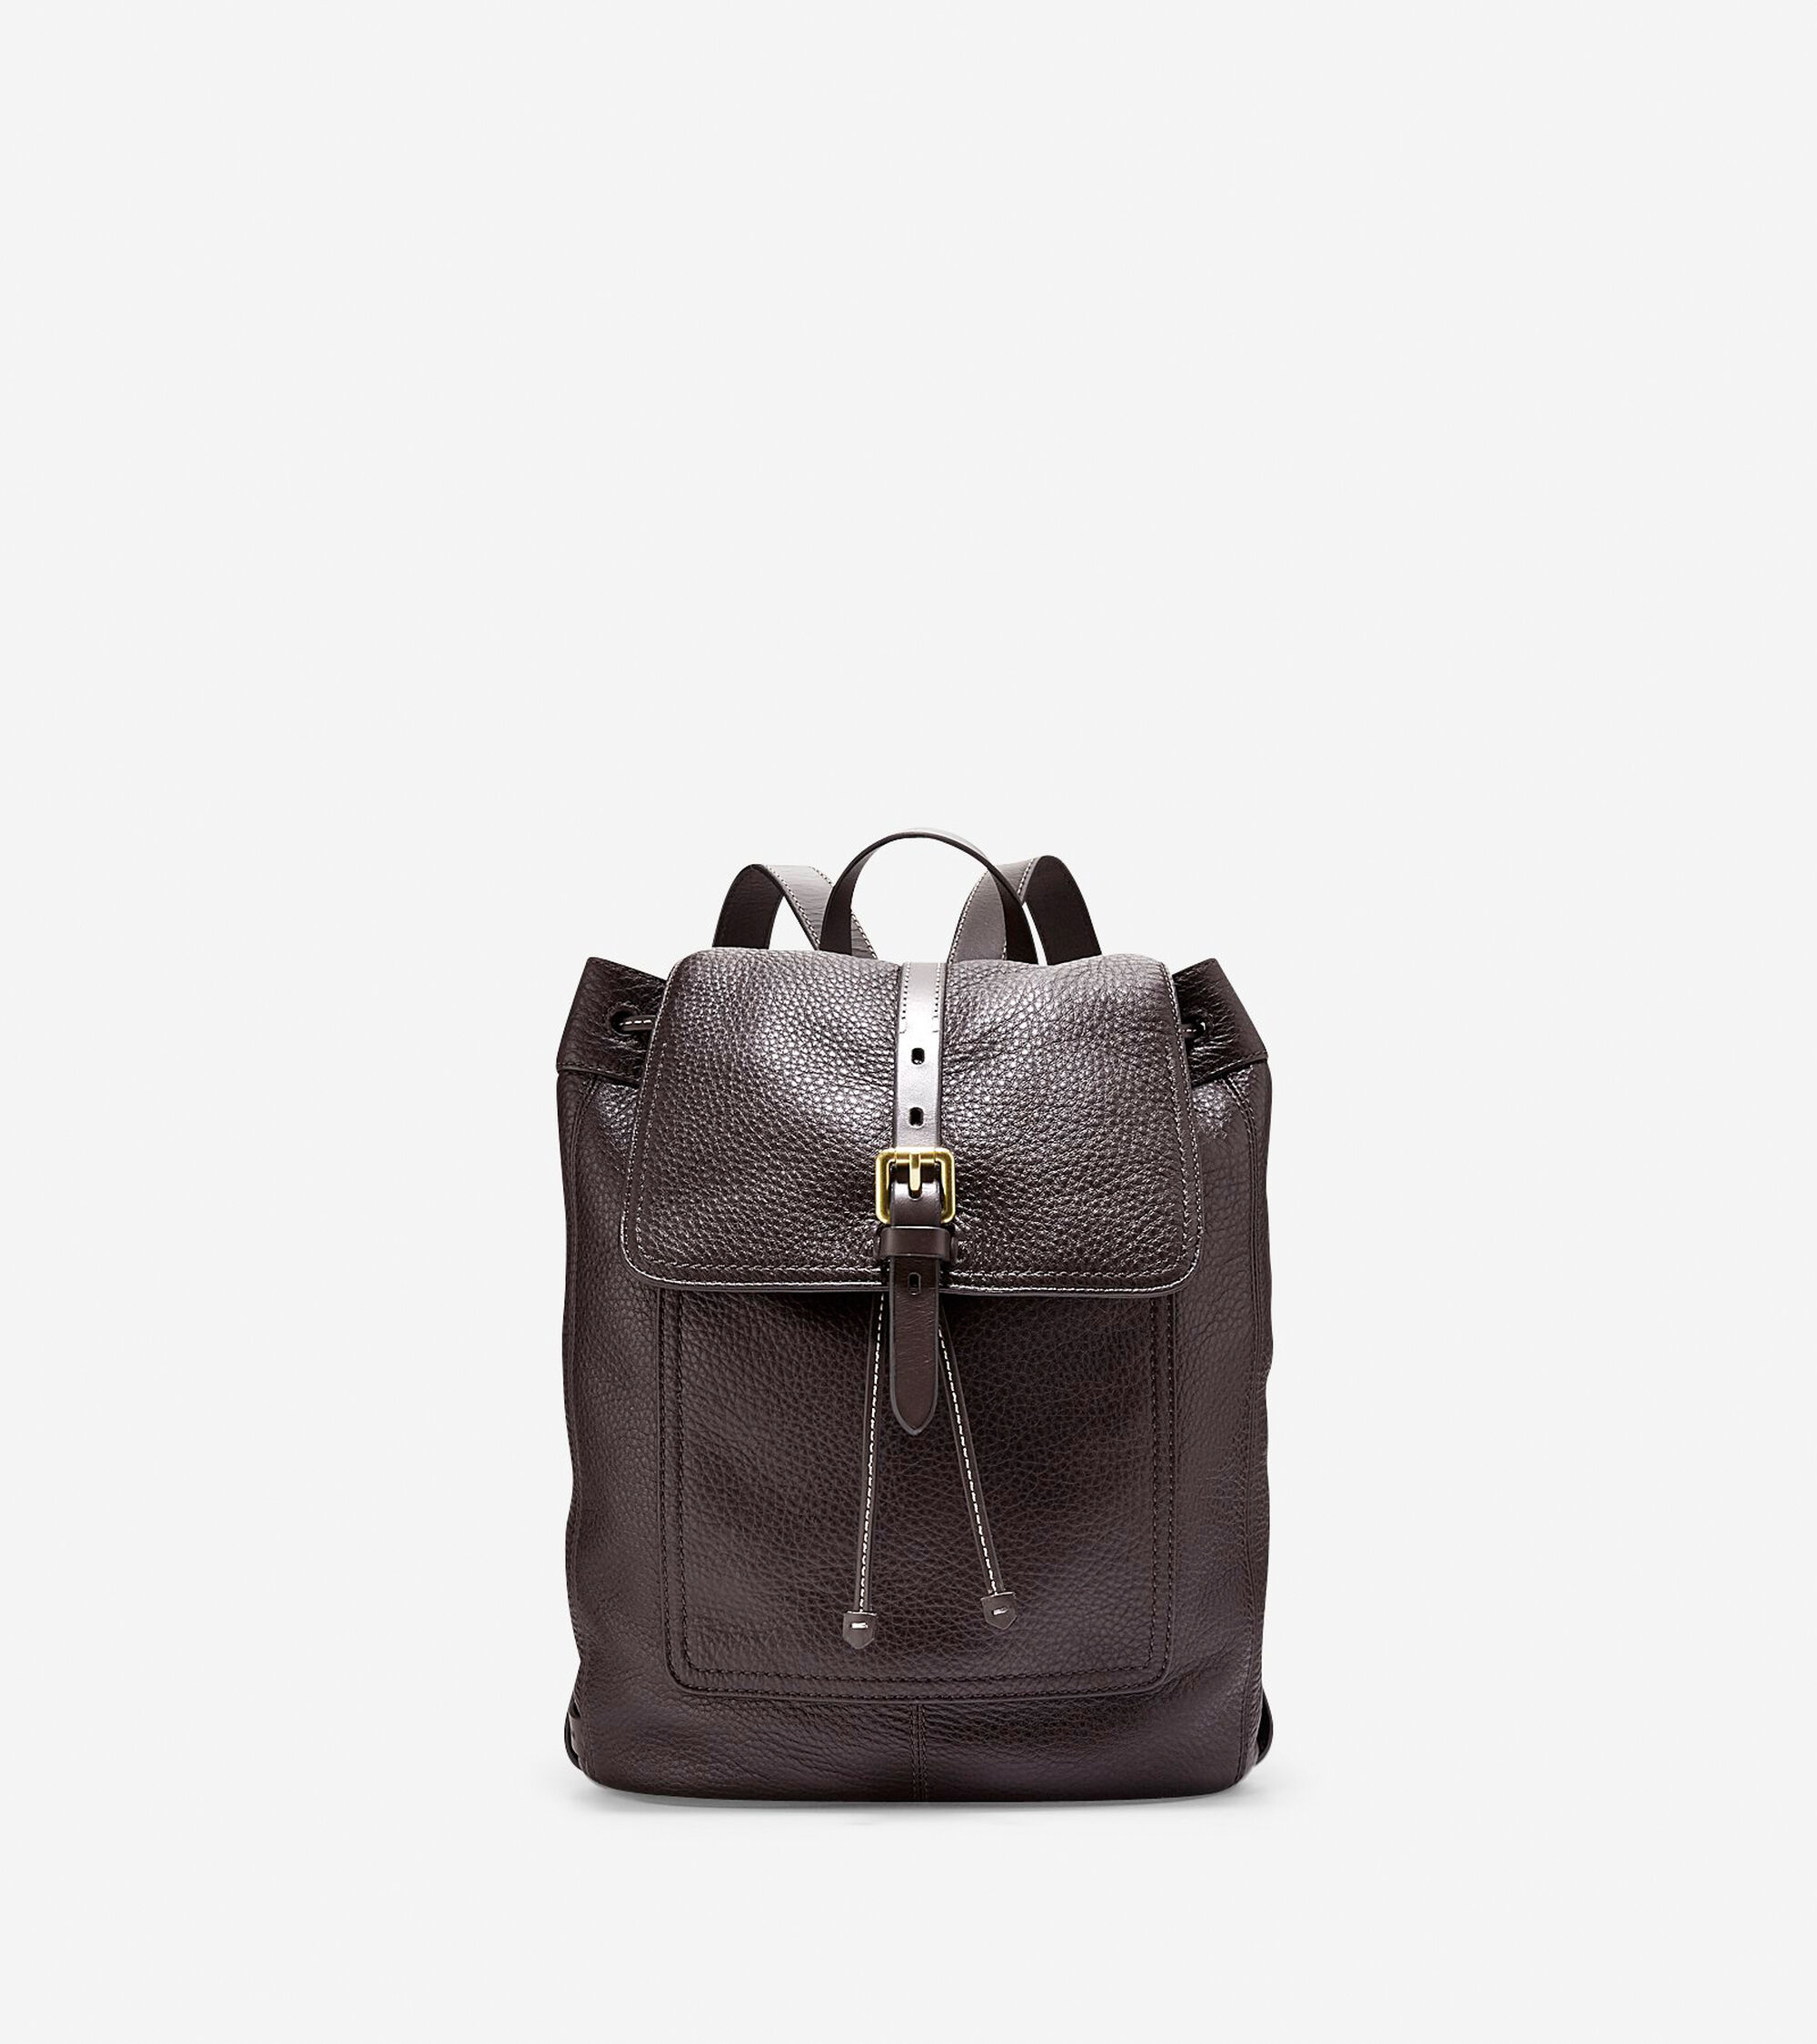 cf720c733f Cole Haan Leather Flap Backpack- Fenix Toulouse Handball